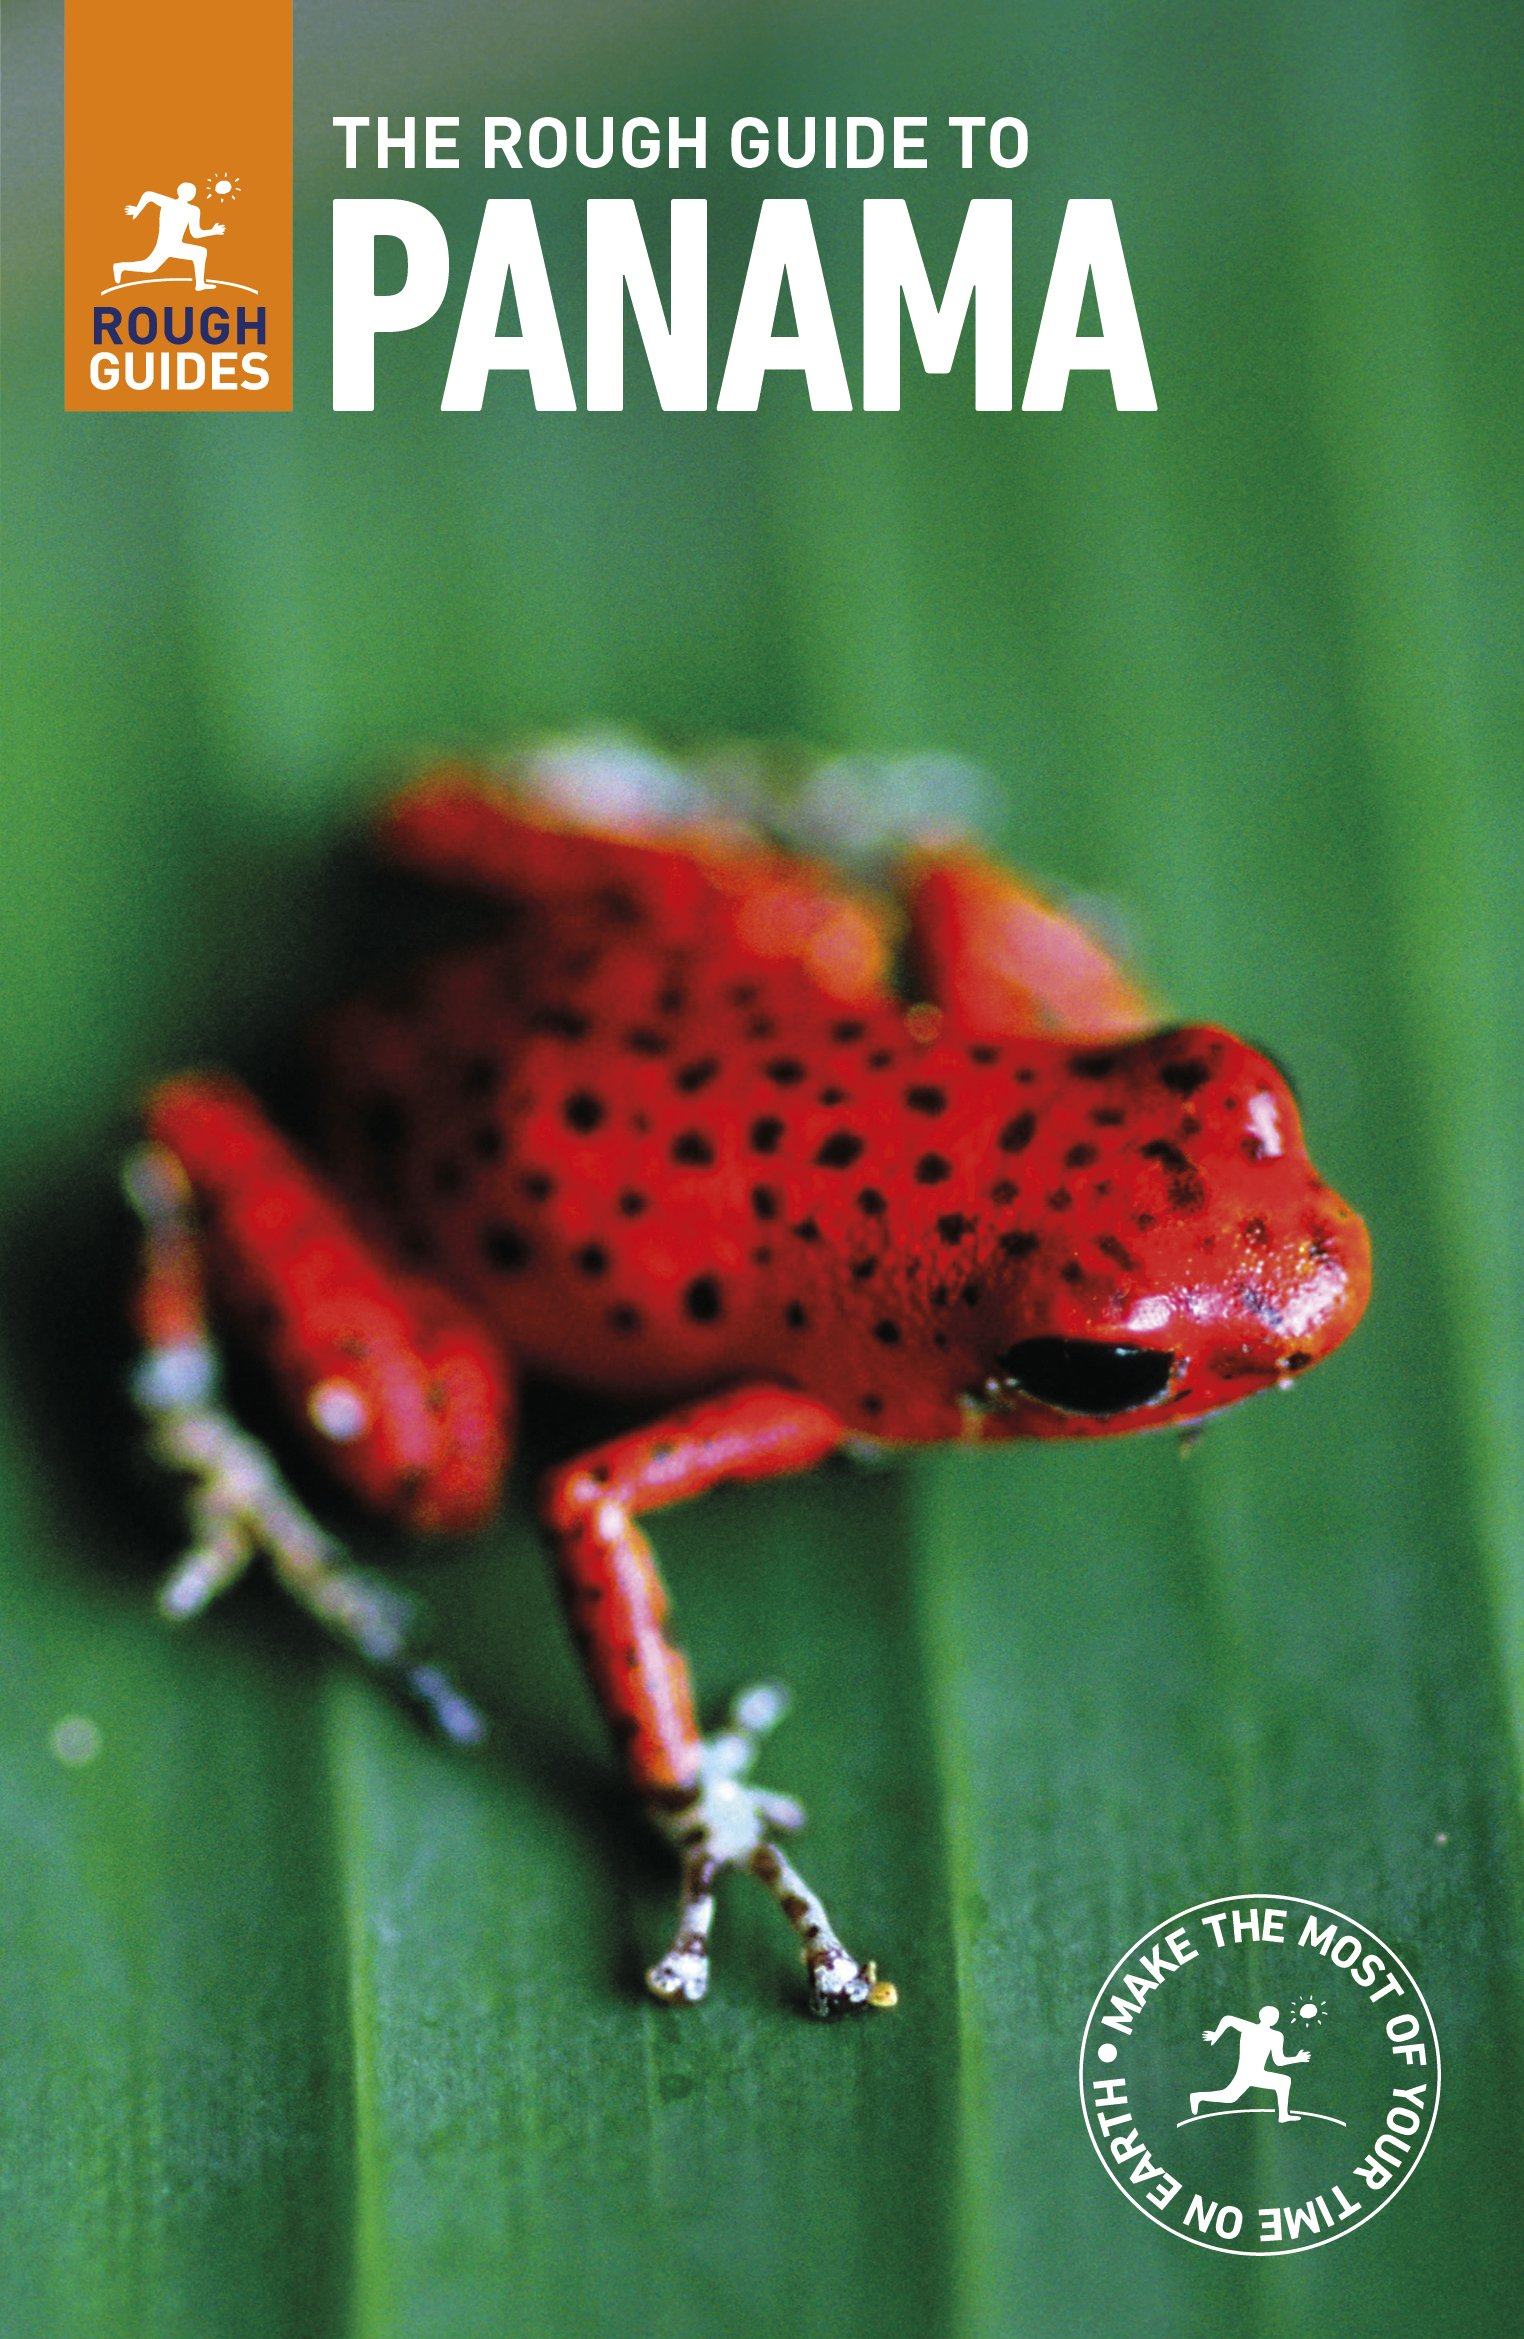 The Rough Guide to Panama (Rough Guides) ebook